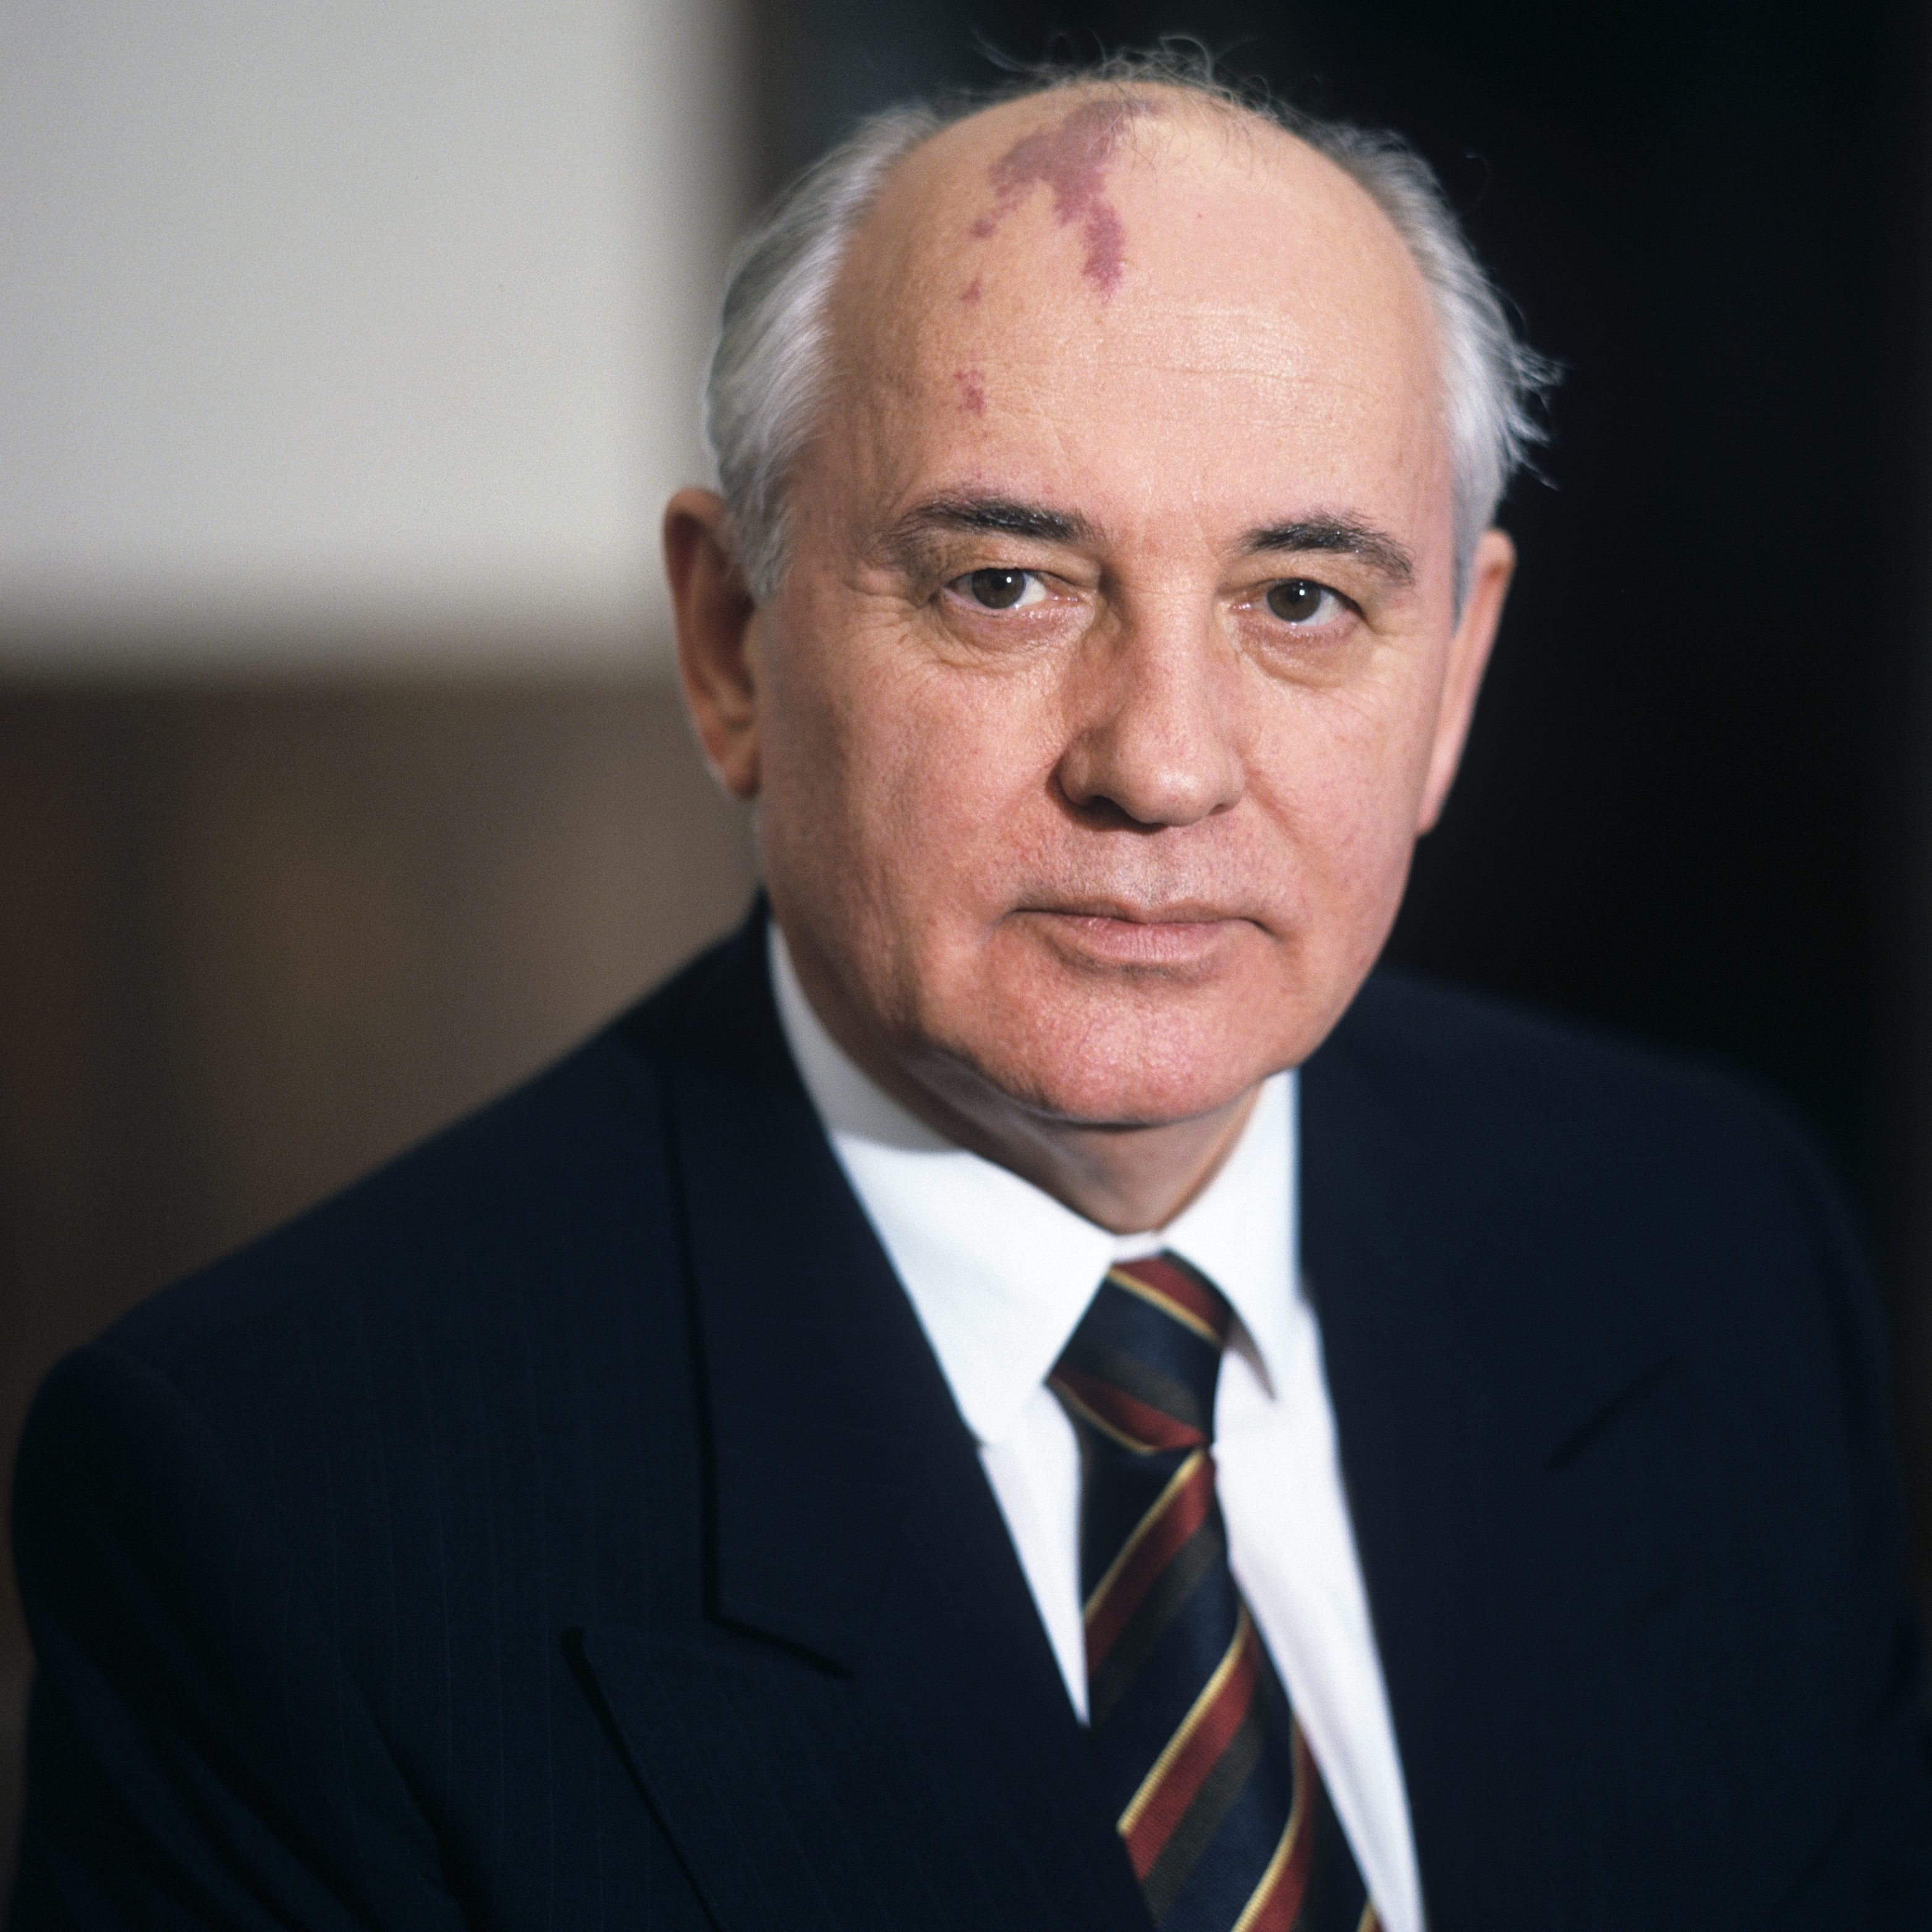 MOSCOW, RUSSIA: General Secretary of the Central Committee of the Communist Party of the Soviet Union Mikhail Gorbachev in the mid 80's in Moscow, Russia. From Ogonyek magazine archive. (Photo by Kommersant Photo via Getty Images)